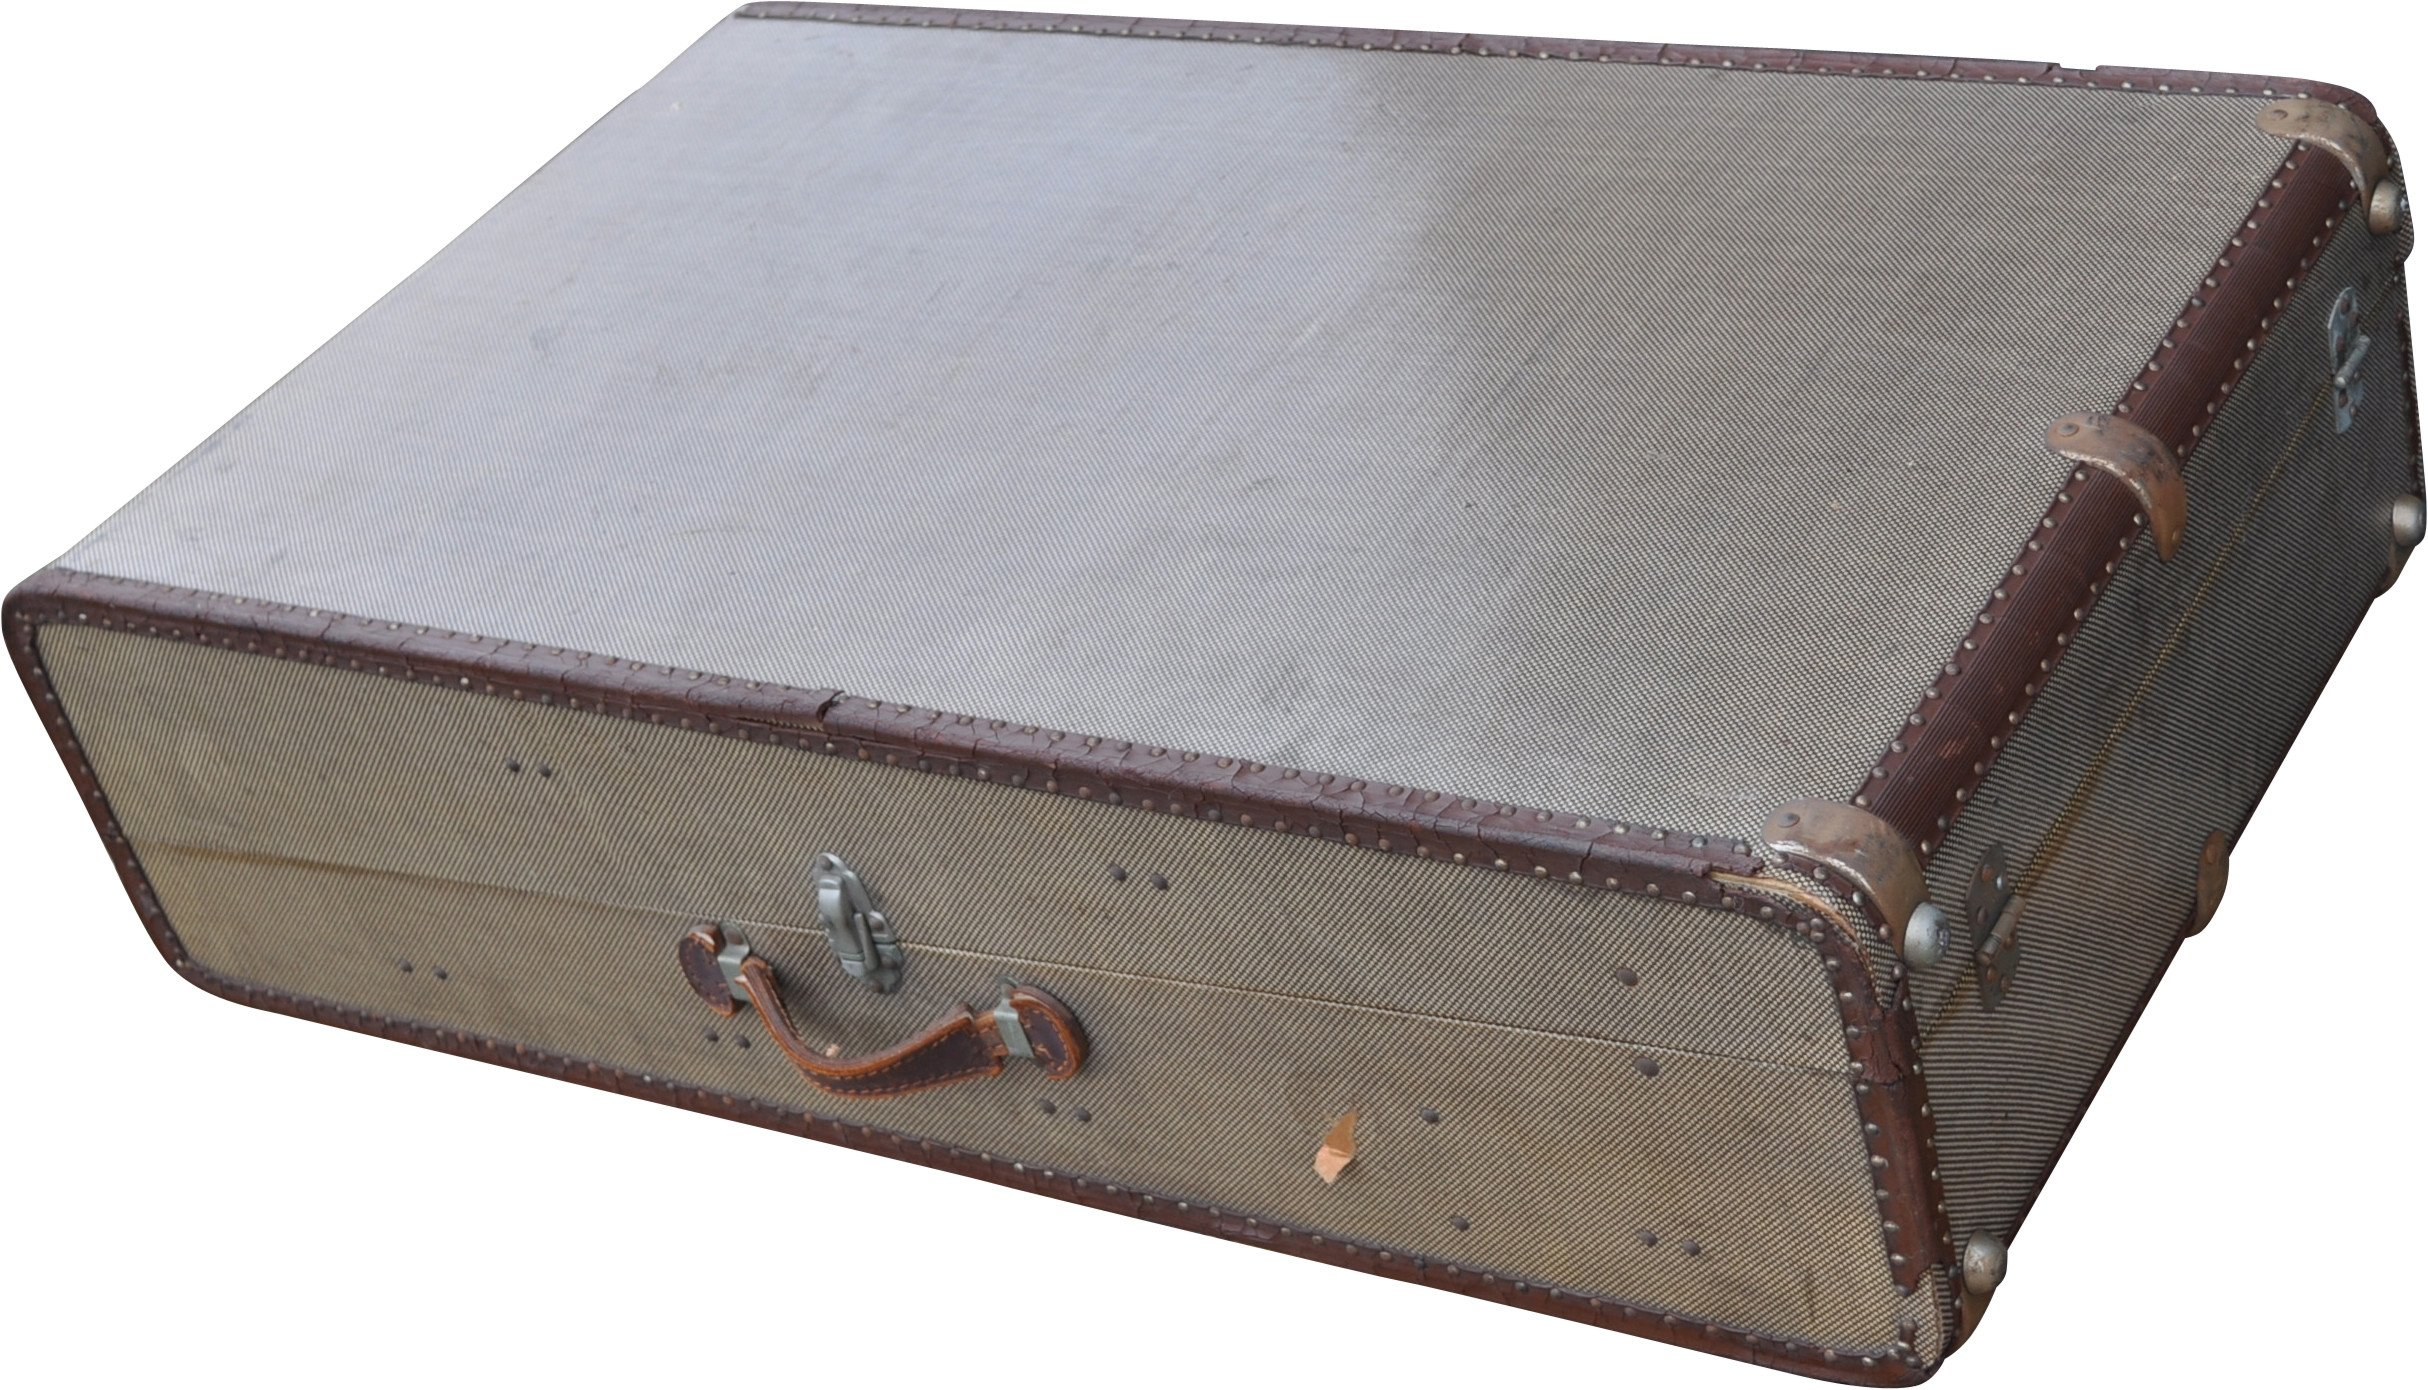 Suitcase, Hepco, early 20th C.